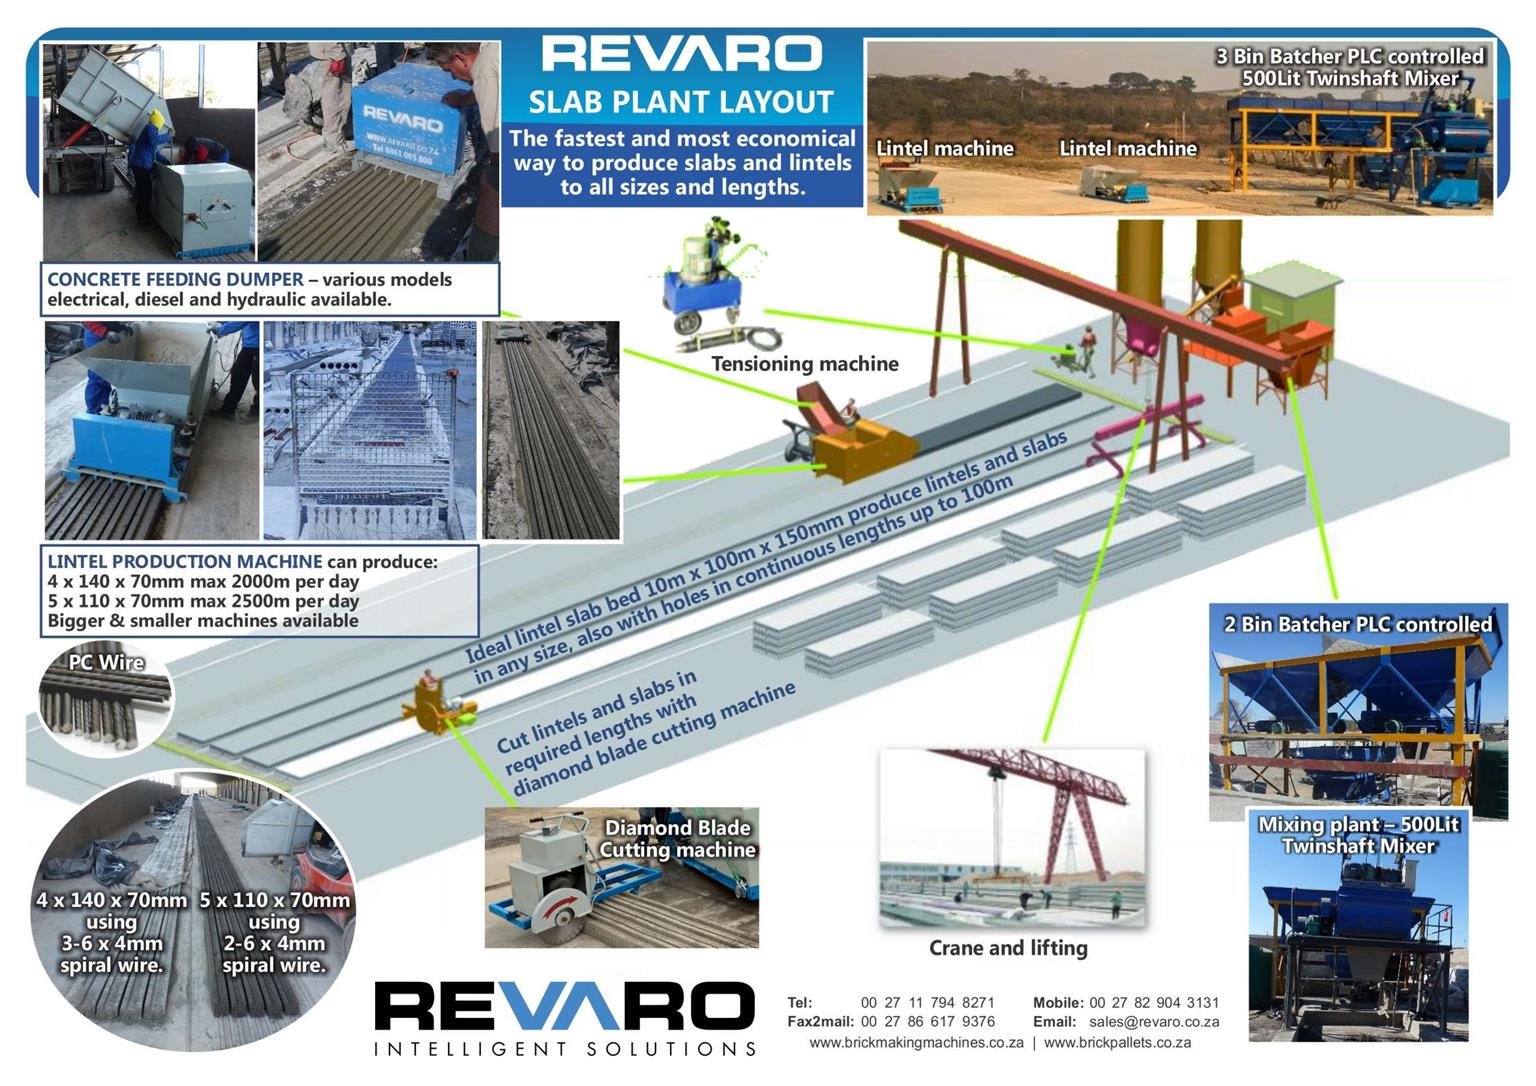 Slip Pushformer for Production of Lintels 110x70 and 140x70 Slabs 600 and 1200 wide poles and walling